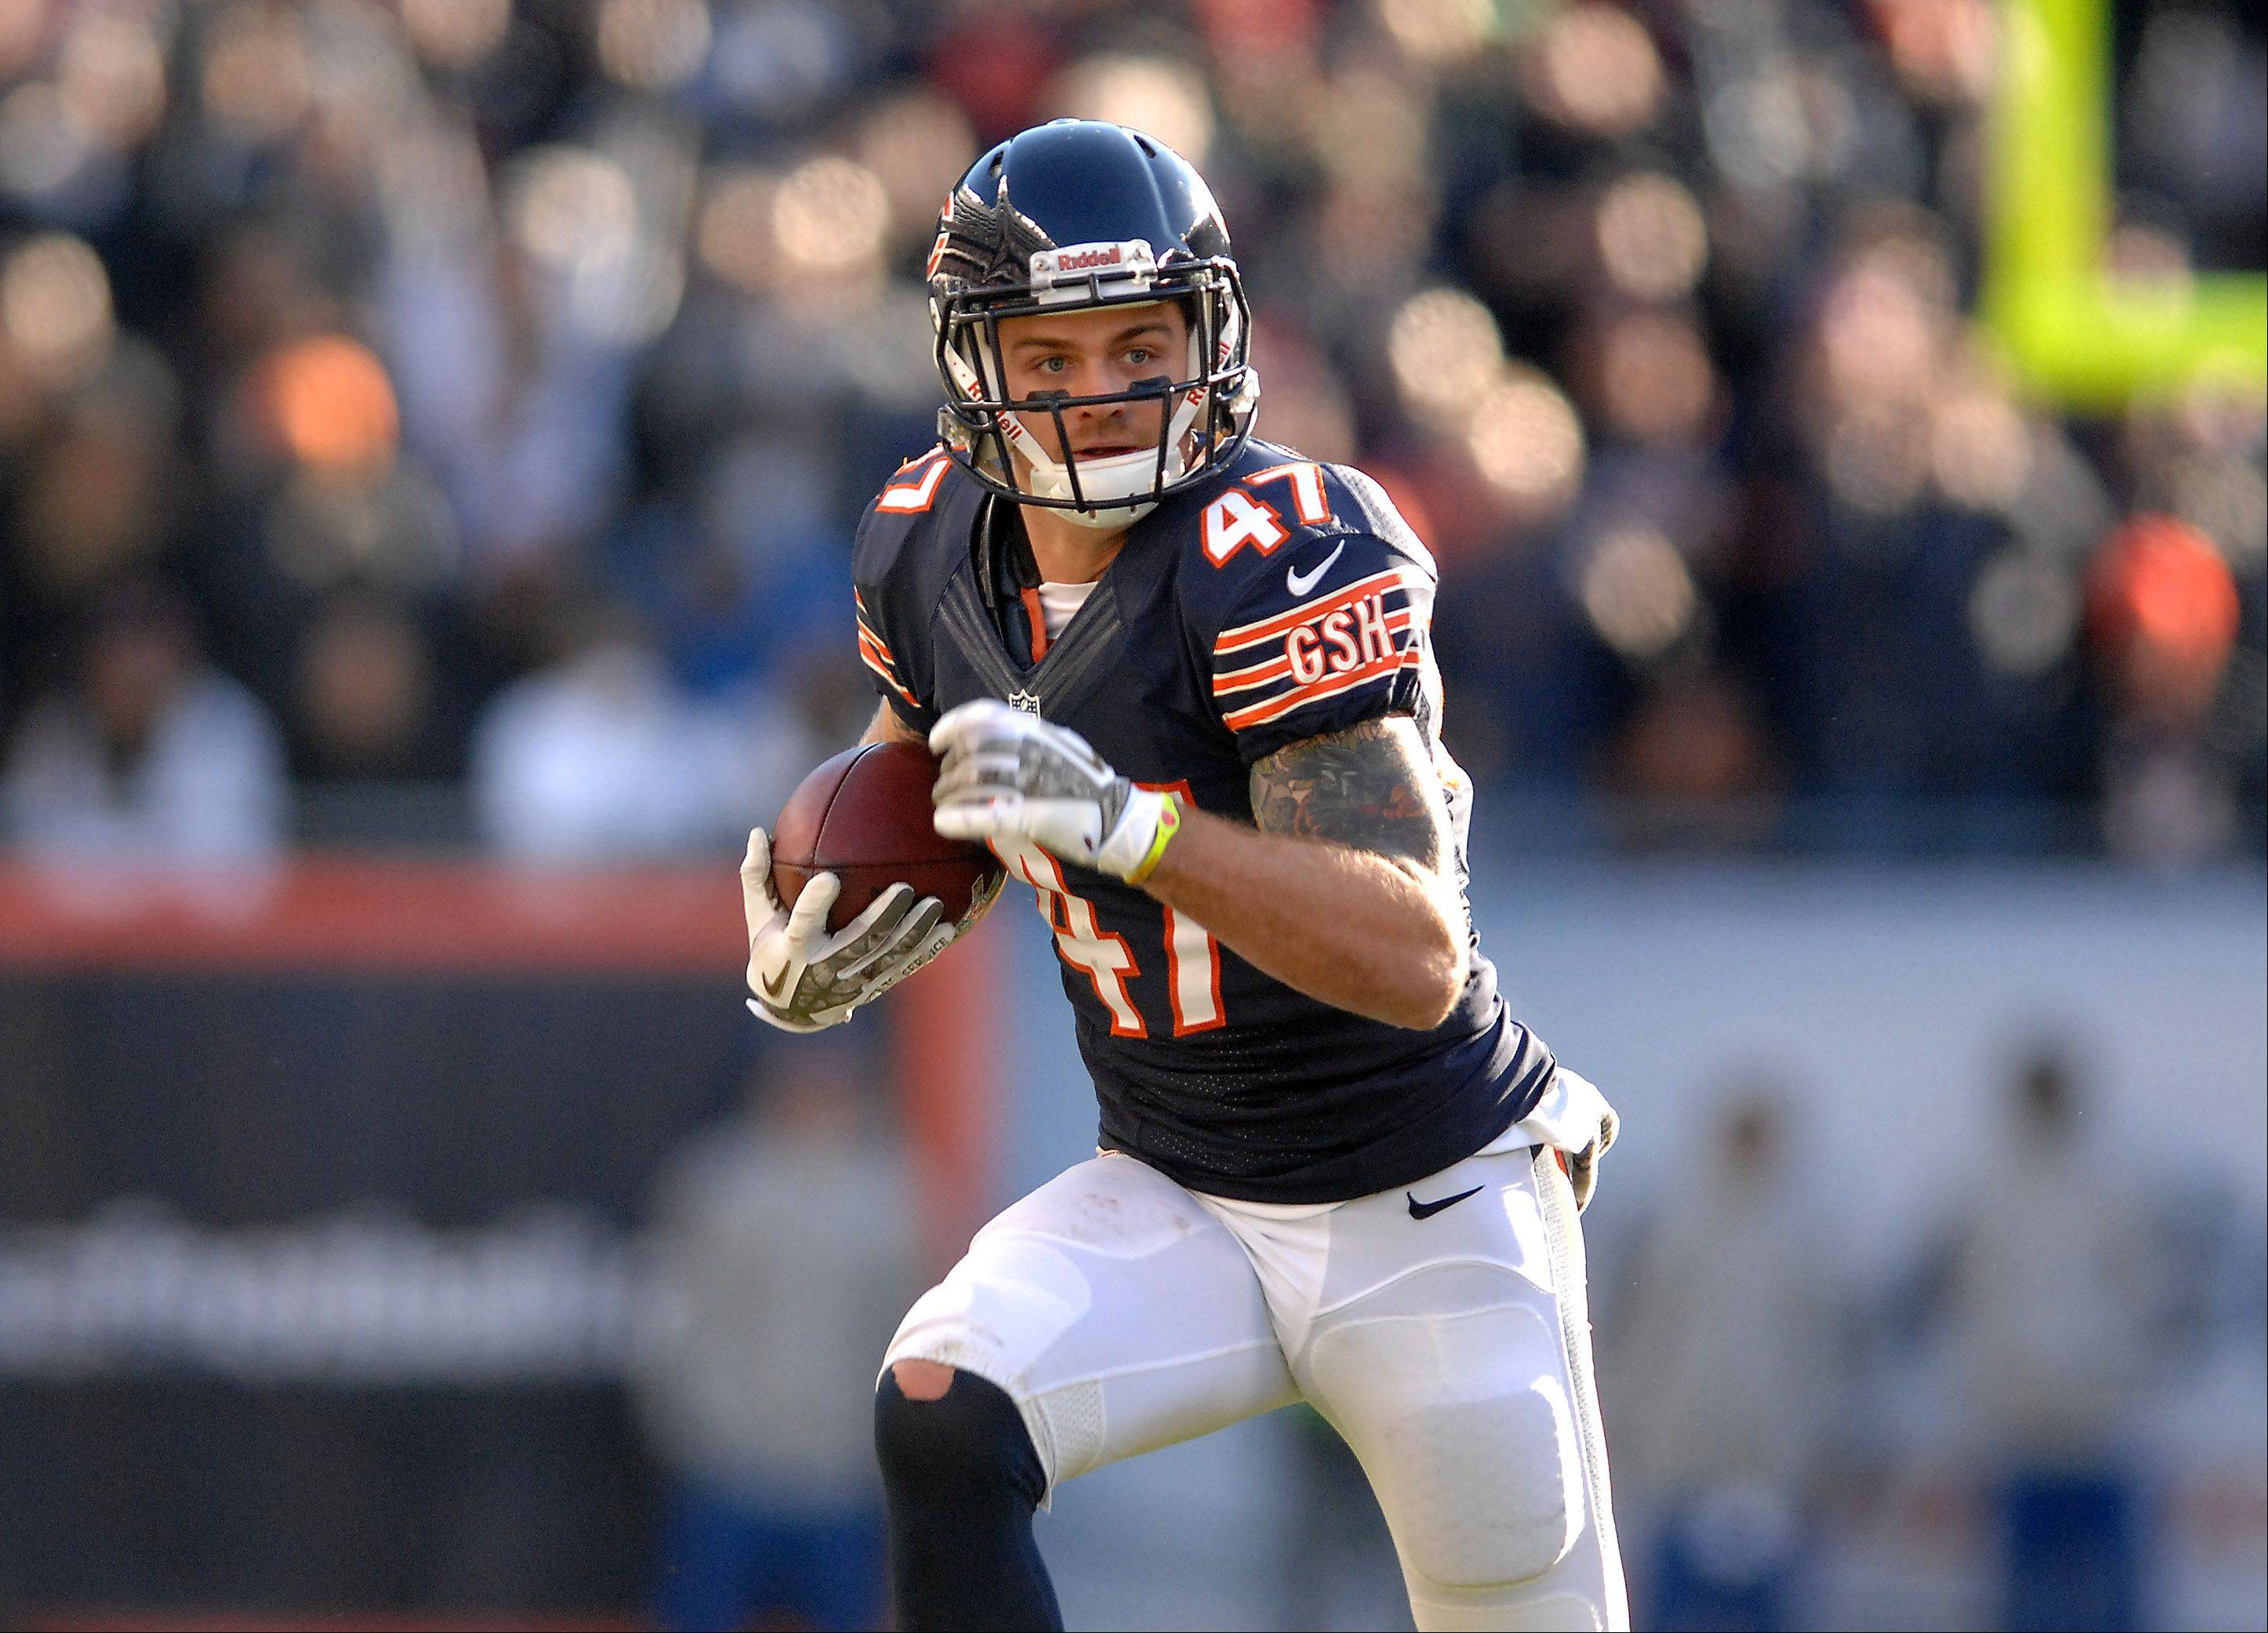 Chicago Bears free safety Chris Conte (47) finds plenty of room to run after his fourth quarter interception during Sunday's game in Chicago.